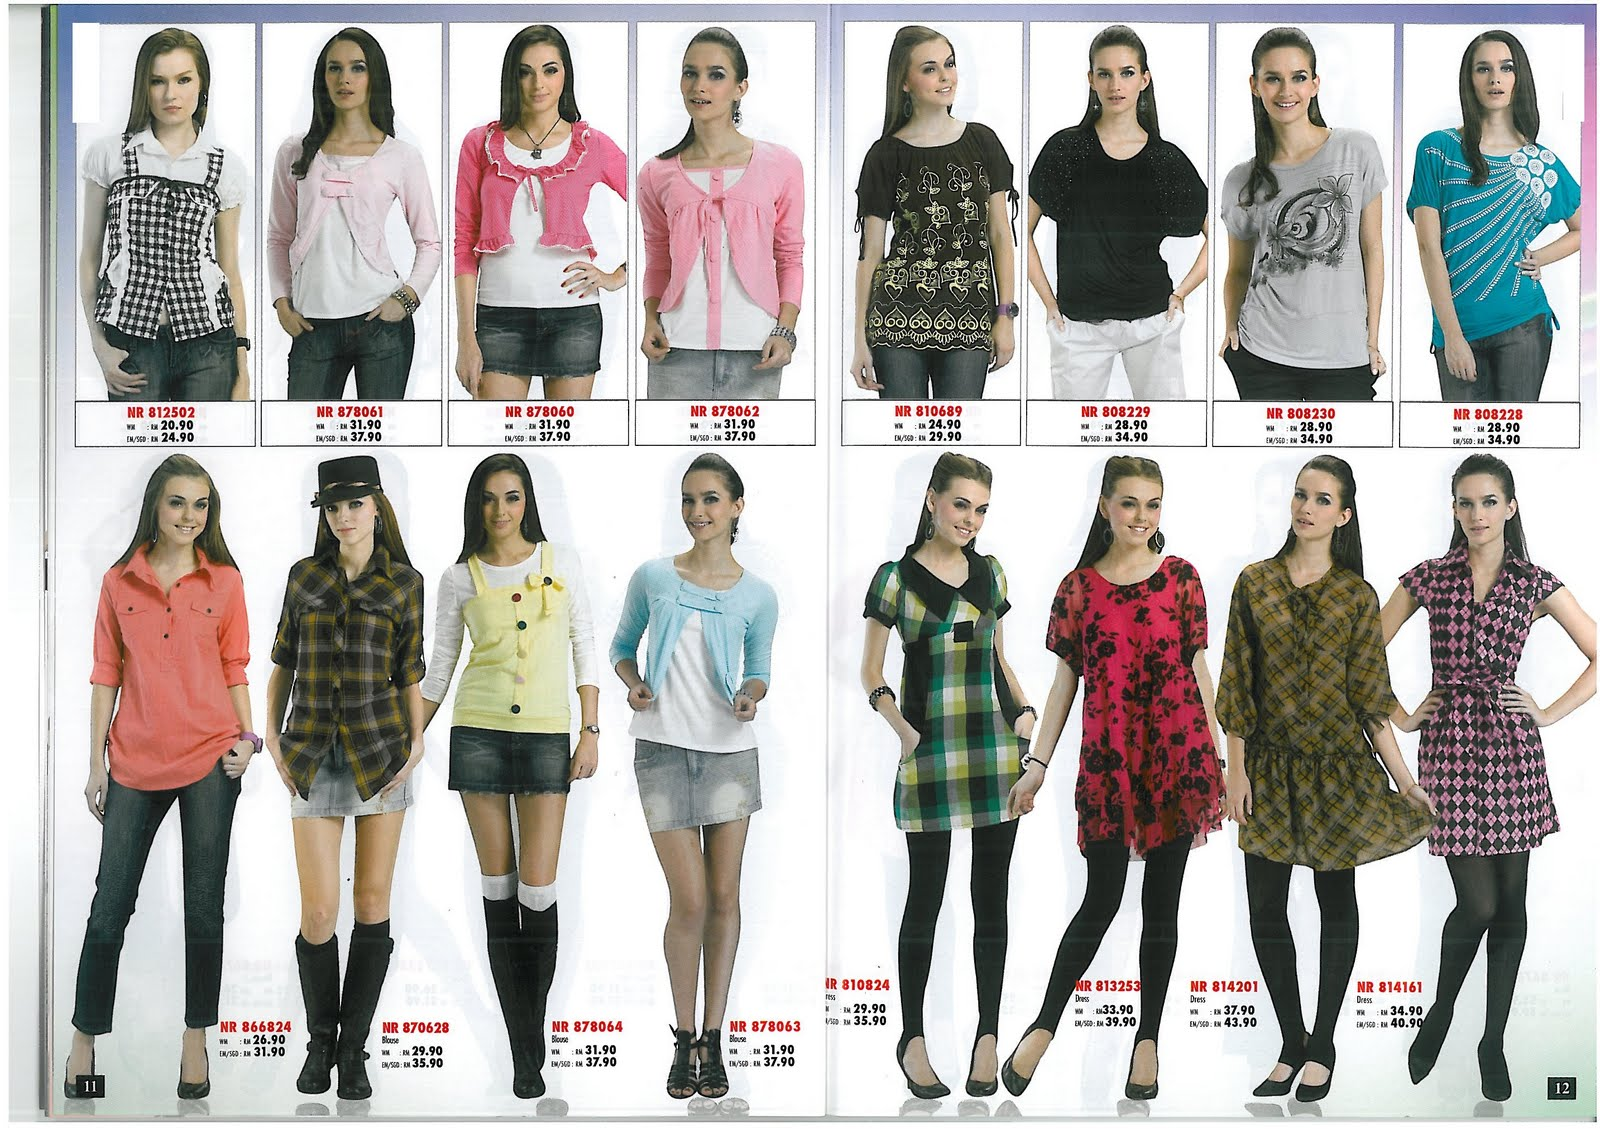 Women's clothing catalogs to keep up with the latest fashion trends with online women's and teens catalogs where you can find great clothes, shoes, swimwear and more.